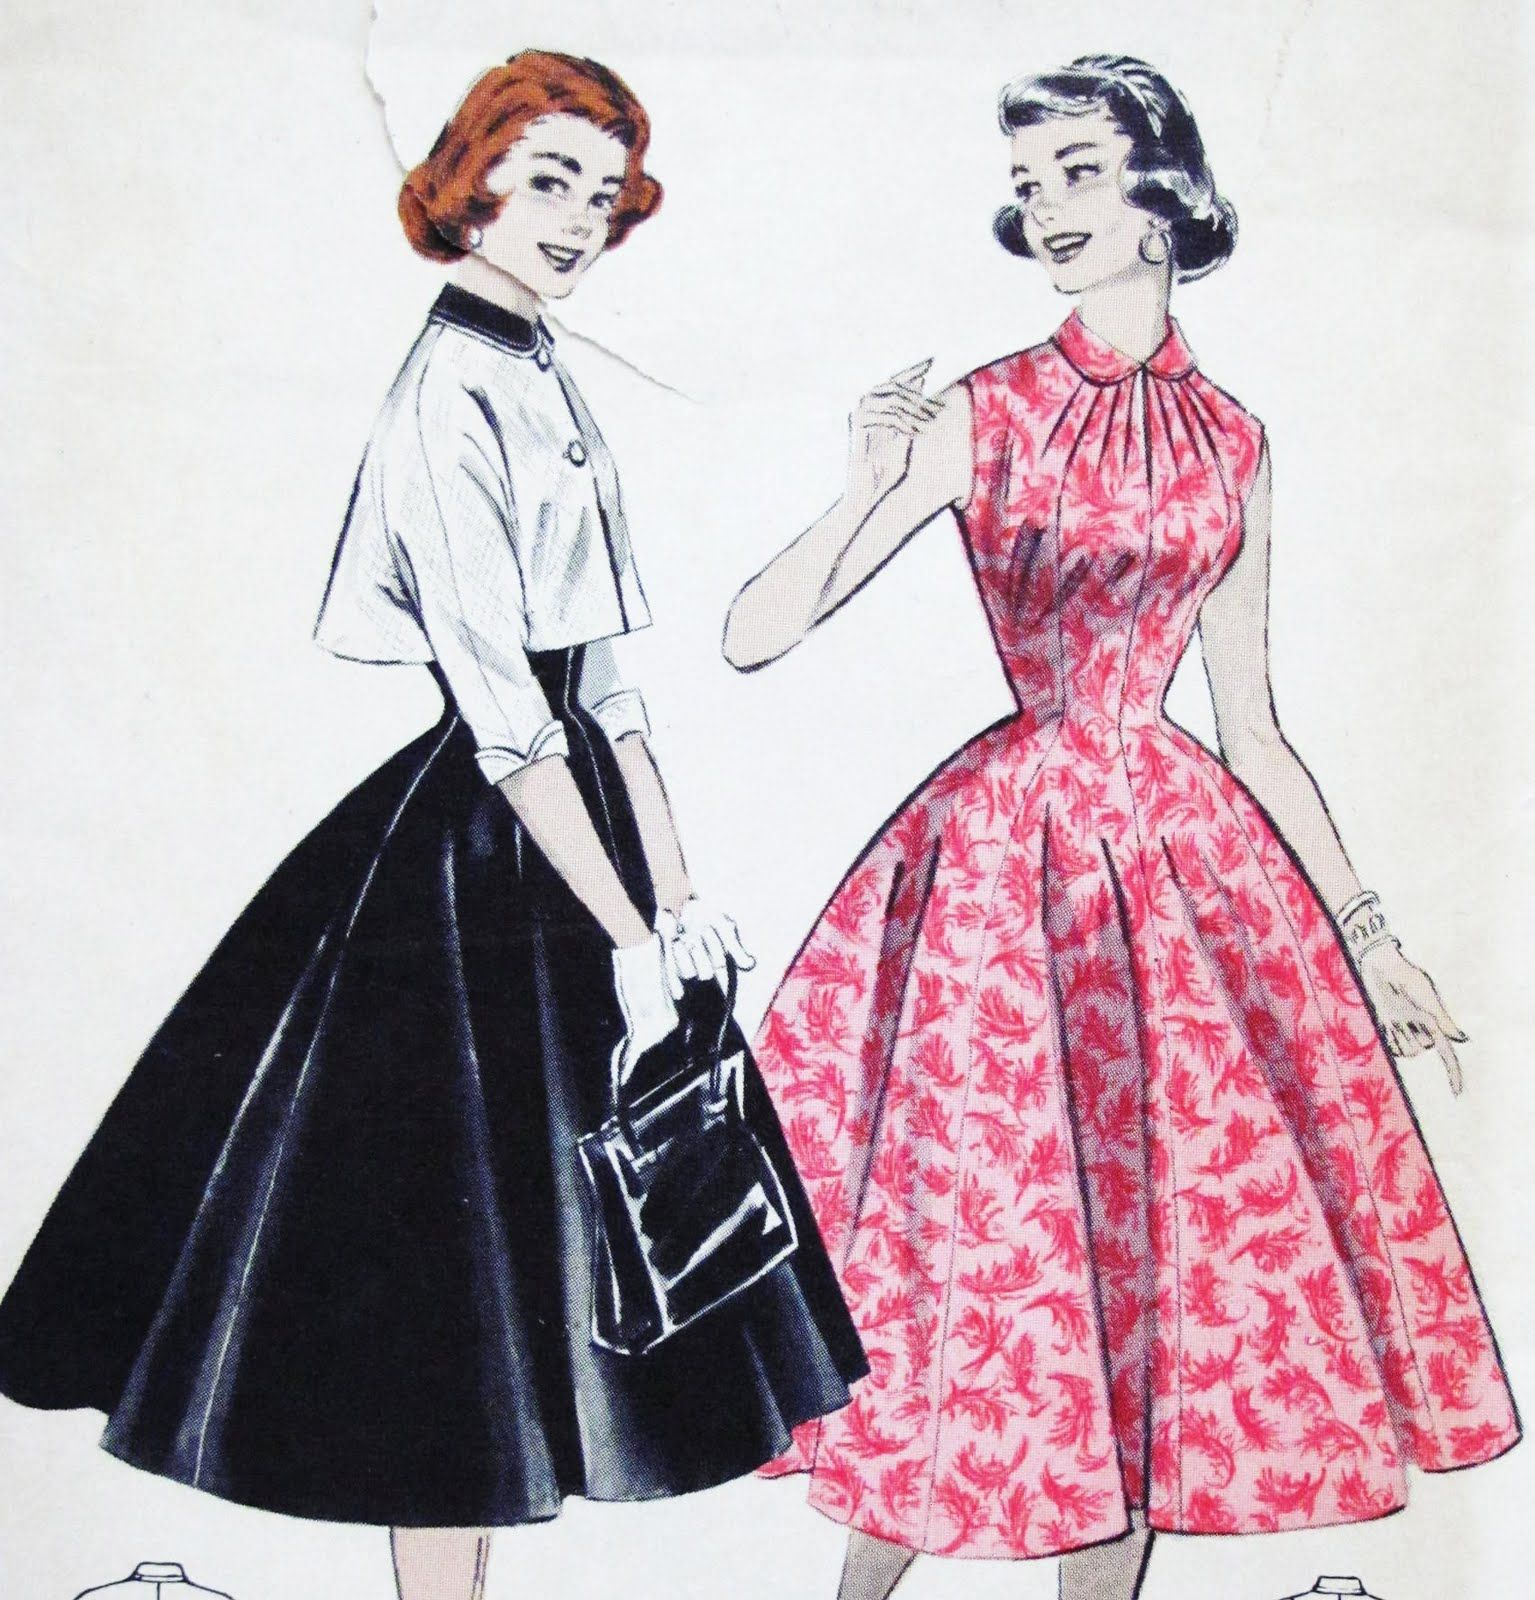 1950 Fashions Pintucks 1950s Vintage Fashion Little Cover Ups The 50 39 S Look Pinterest